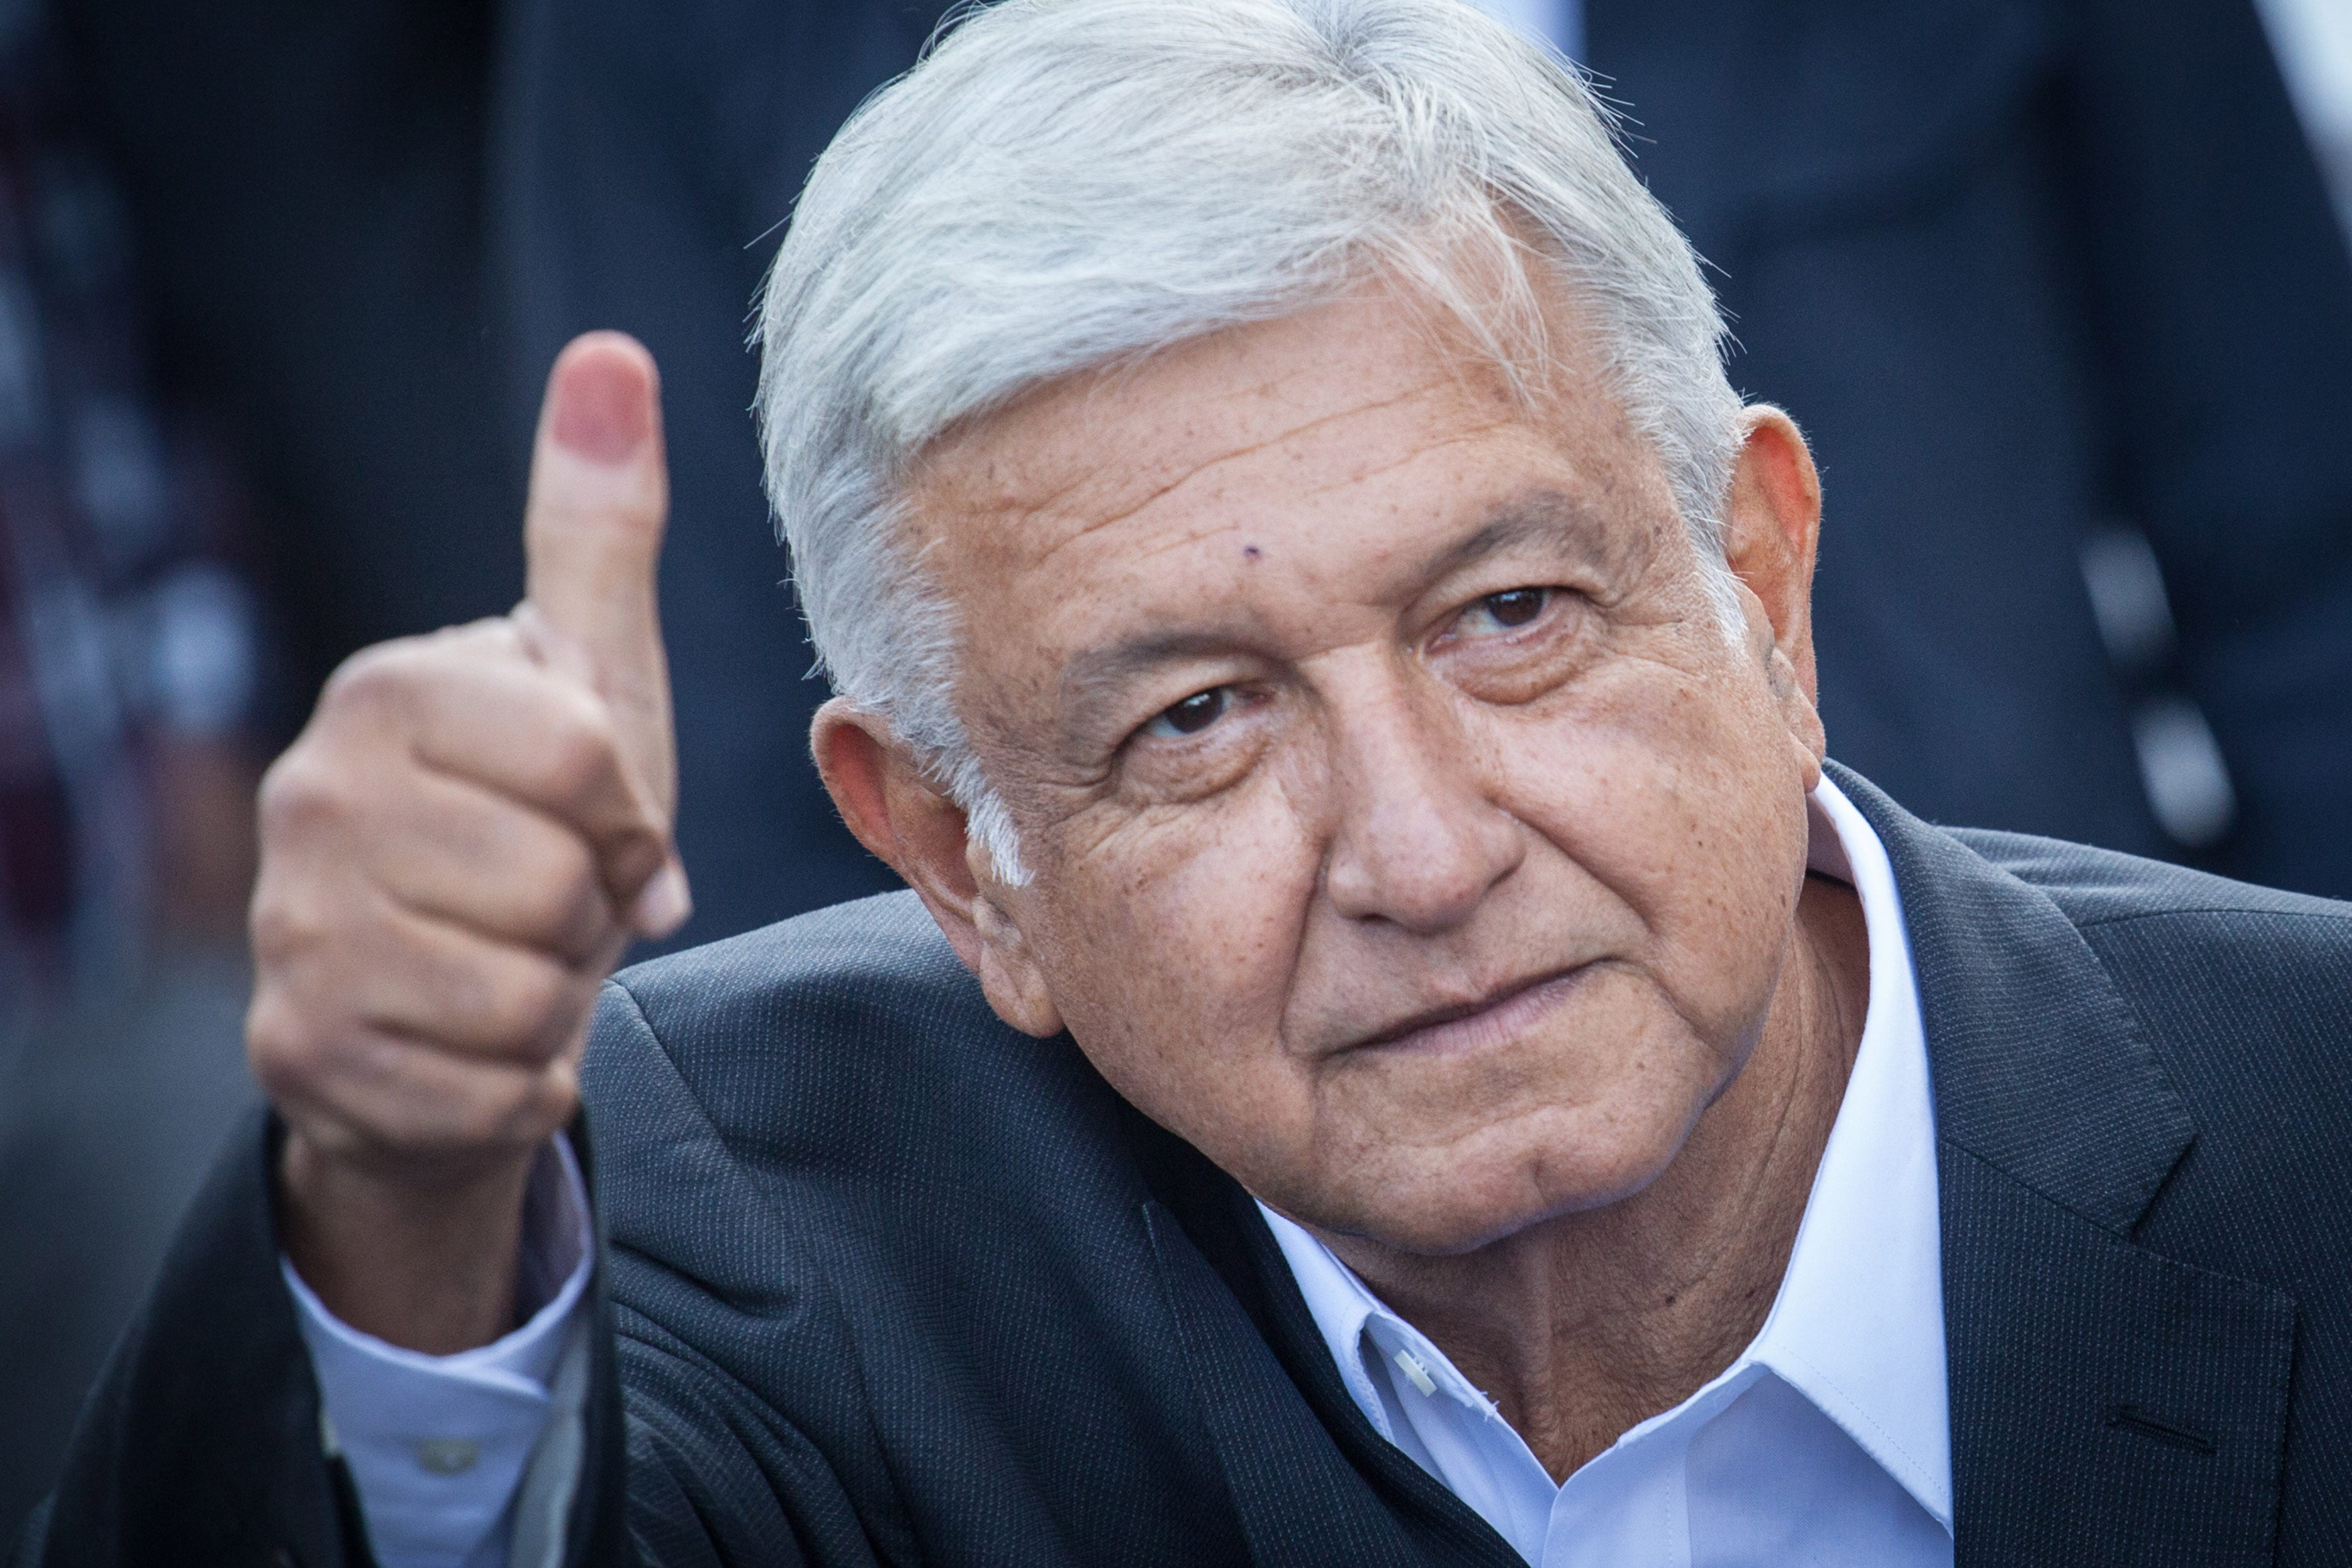 Mexico elects left-leaning populist as president to chart a new course -- exit poll